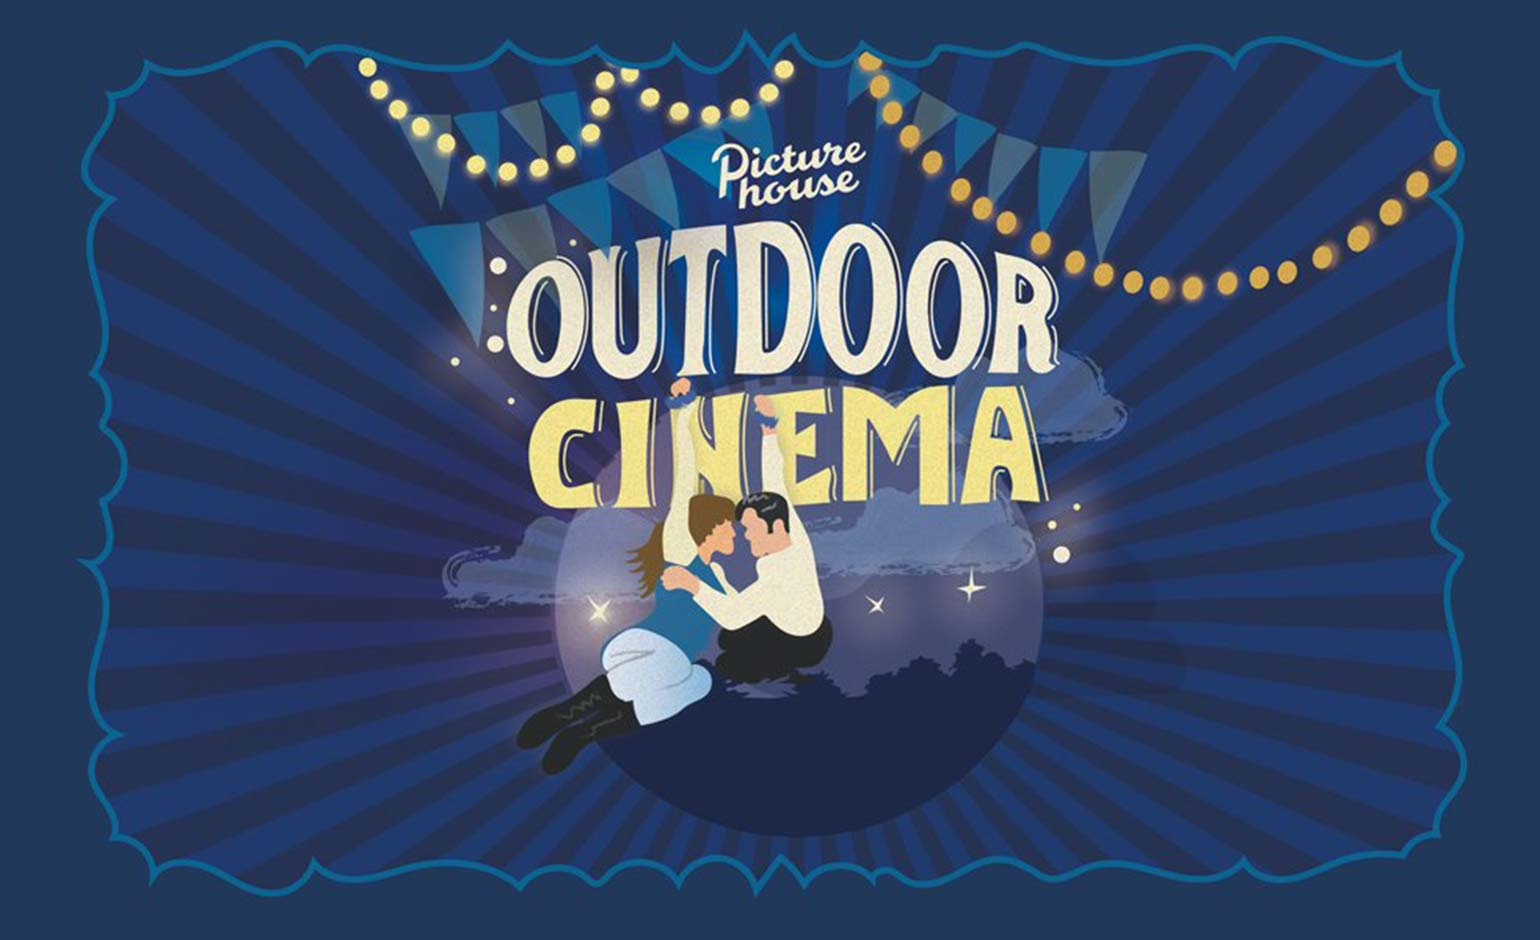 Bath's Little Theatre heads outdoors for weekend of film fun at Alice Park | Bath Echo